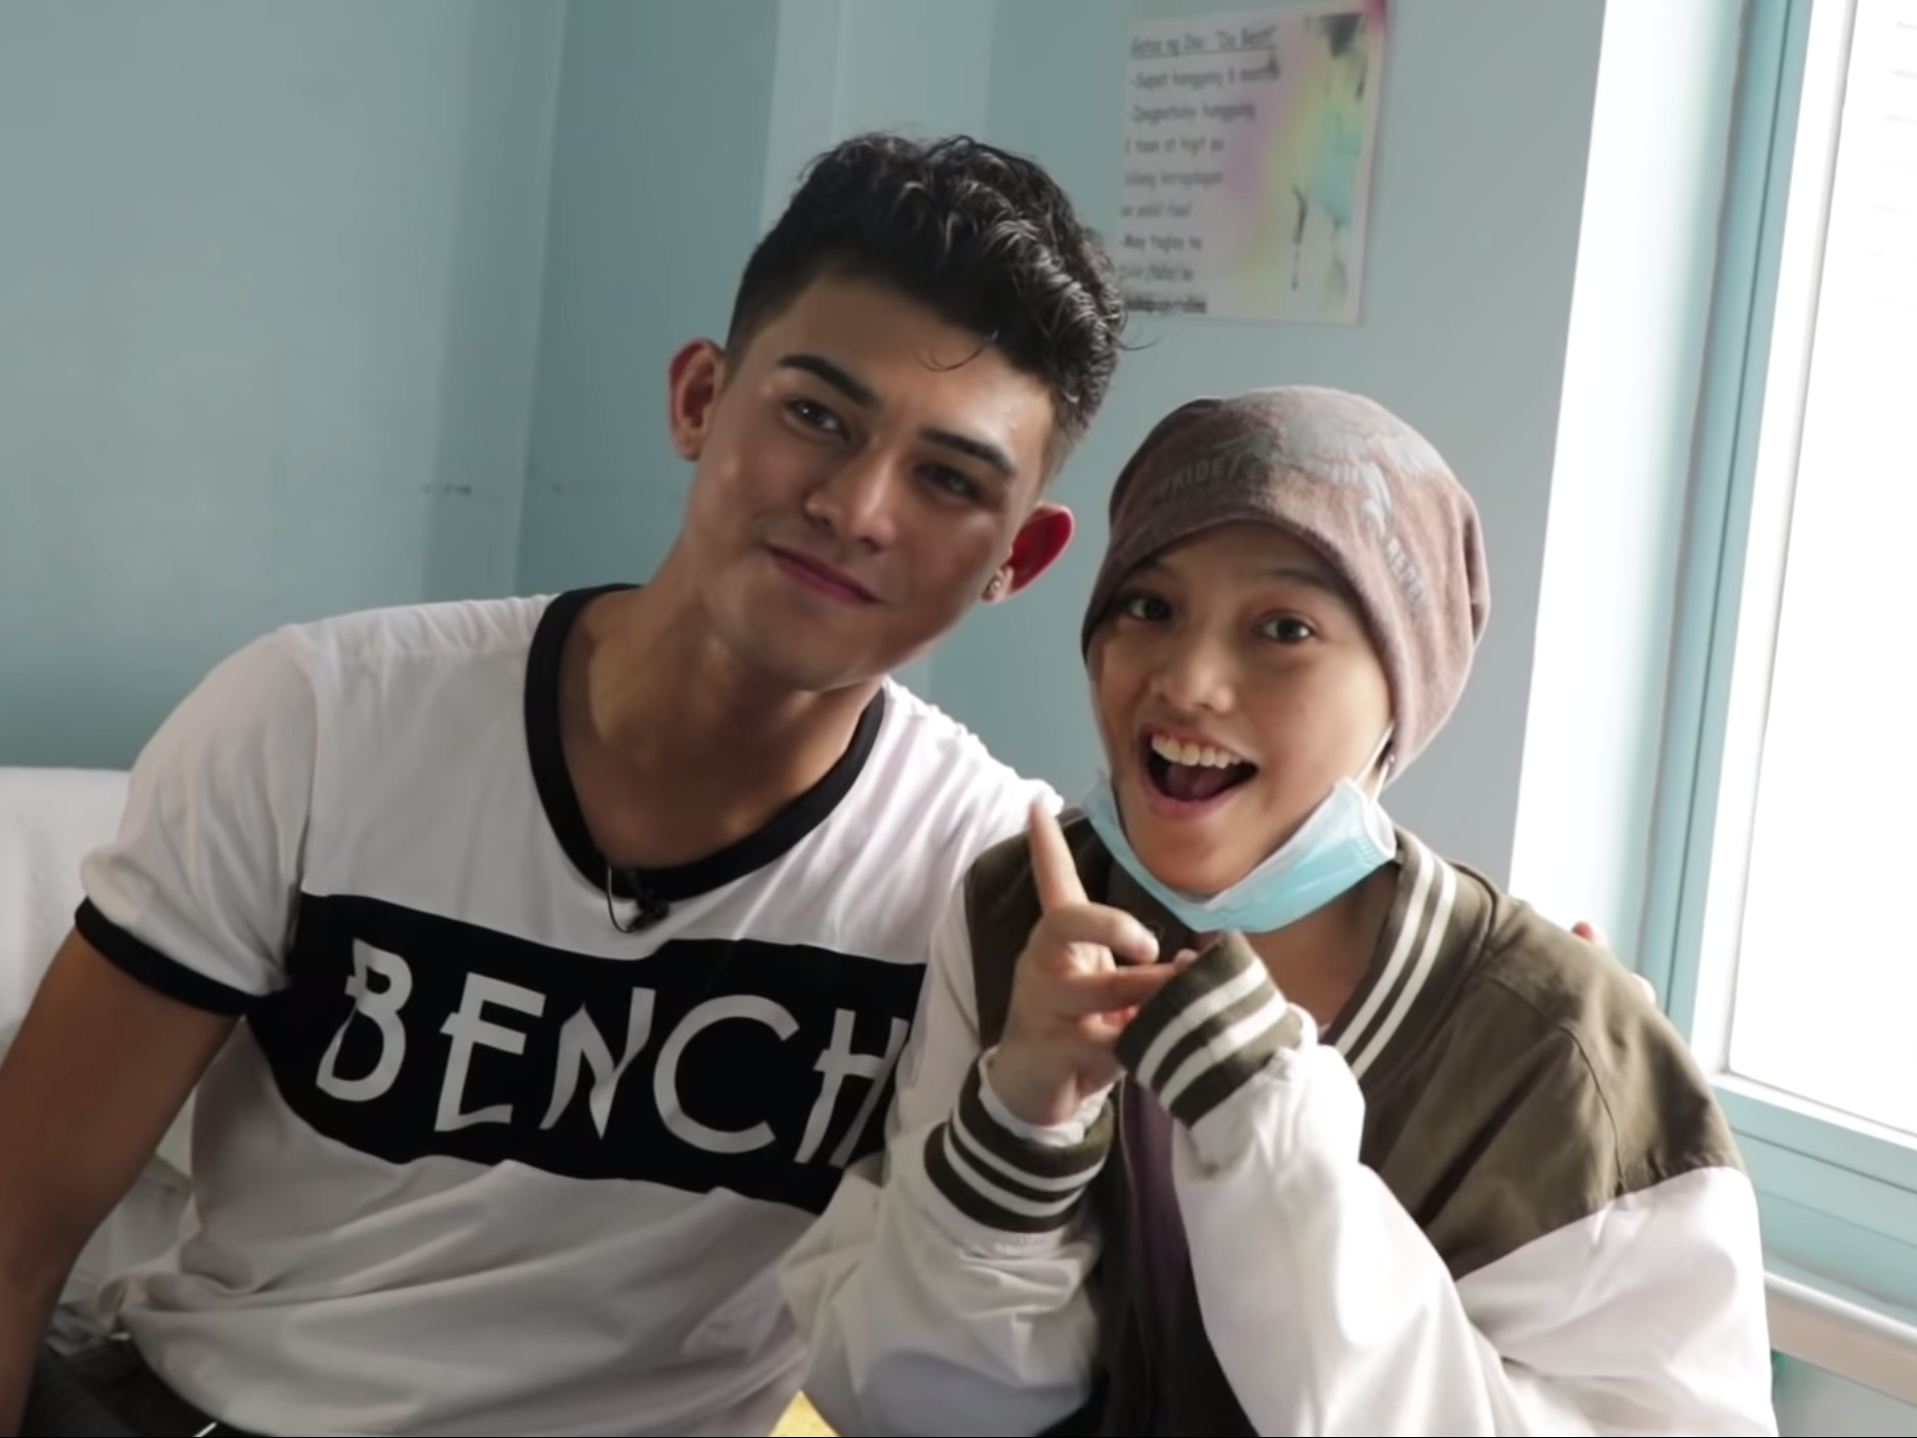 Inigo Pascual is holding a benefit gig for a fan battling leukemia